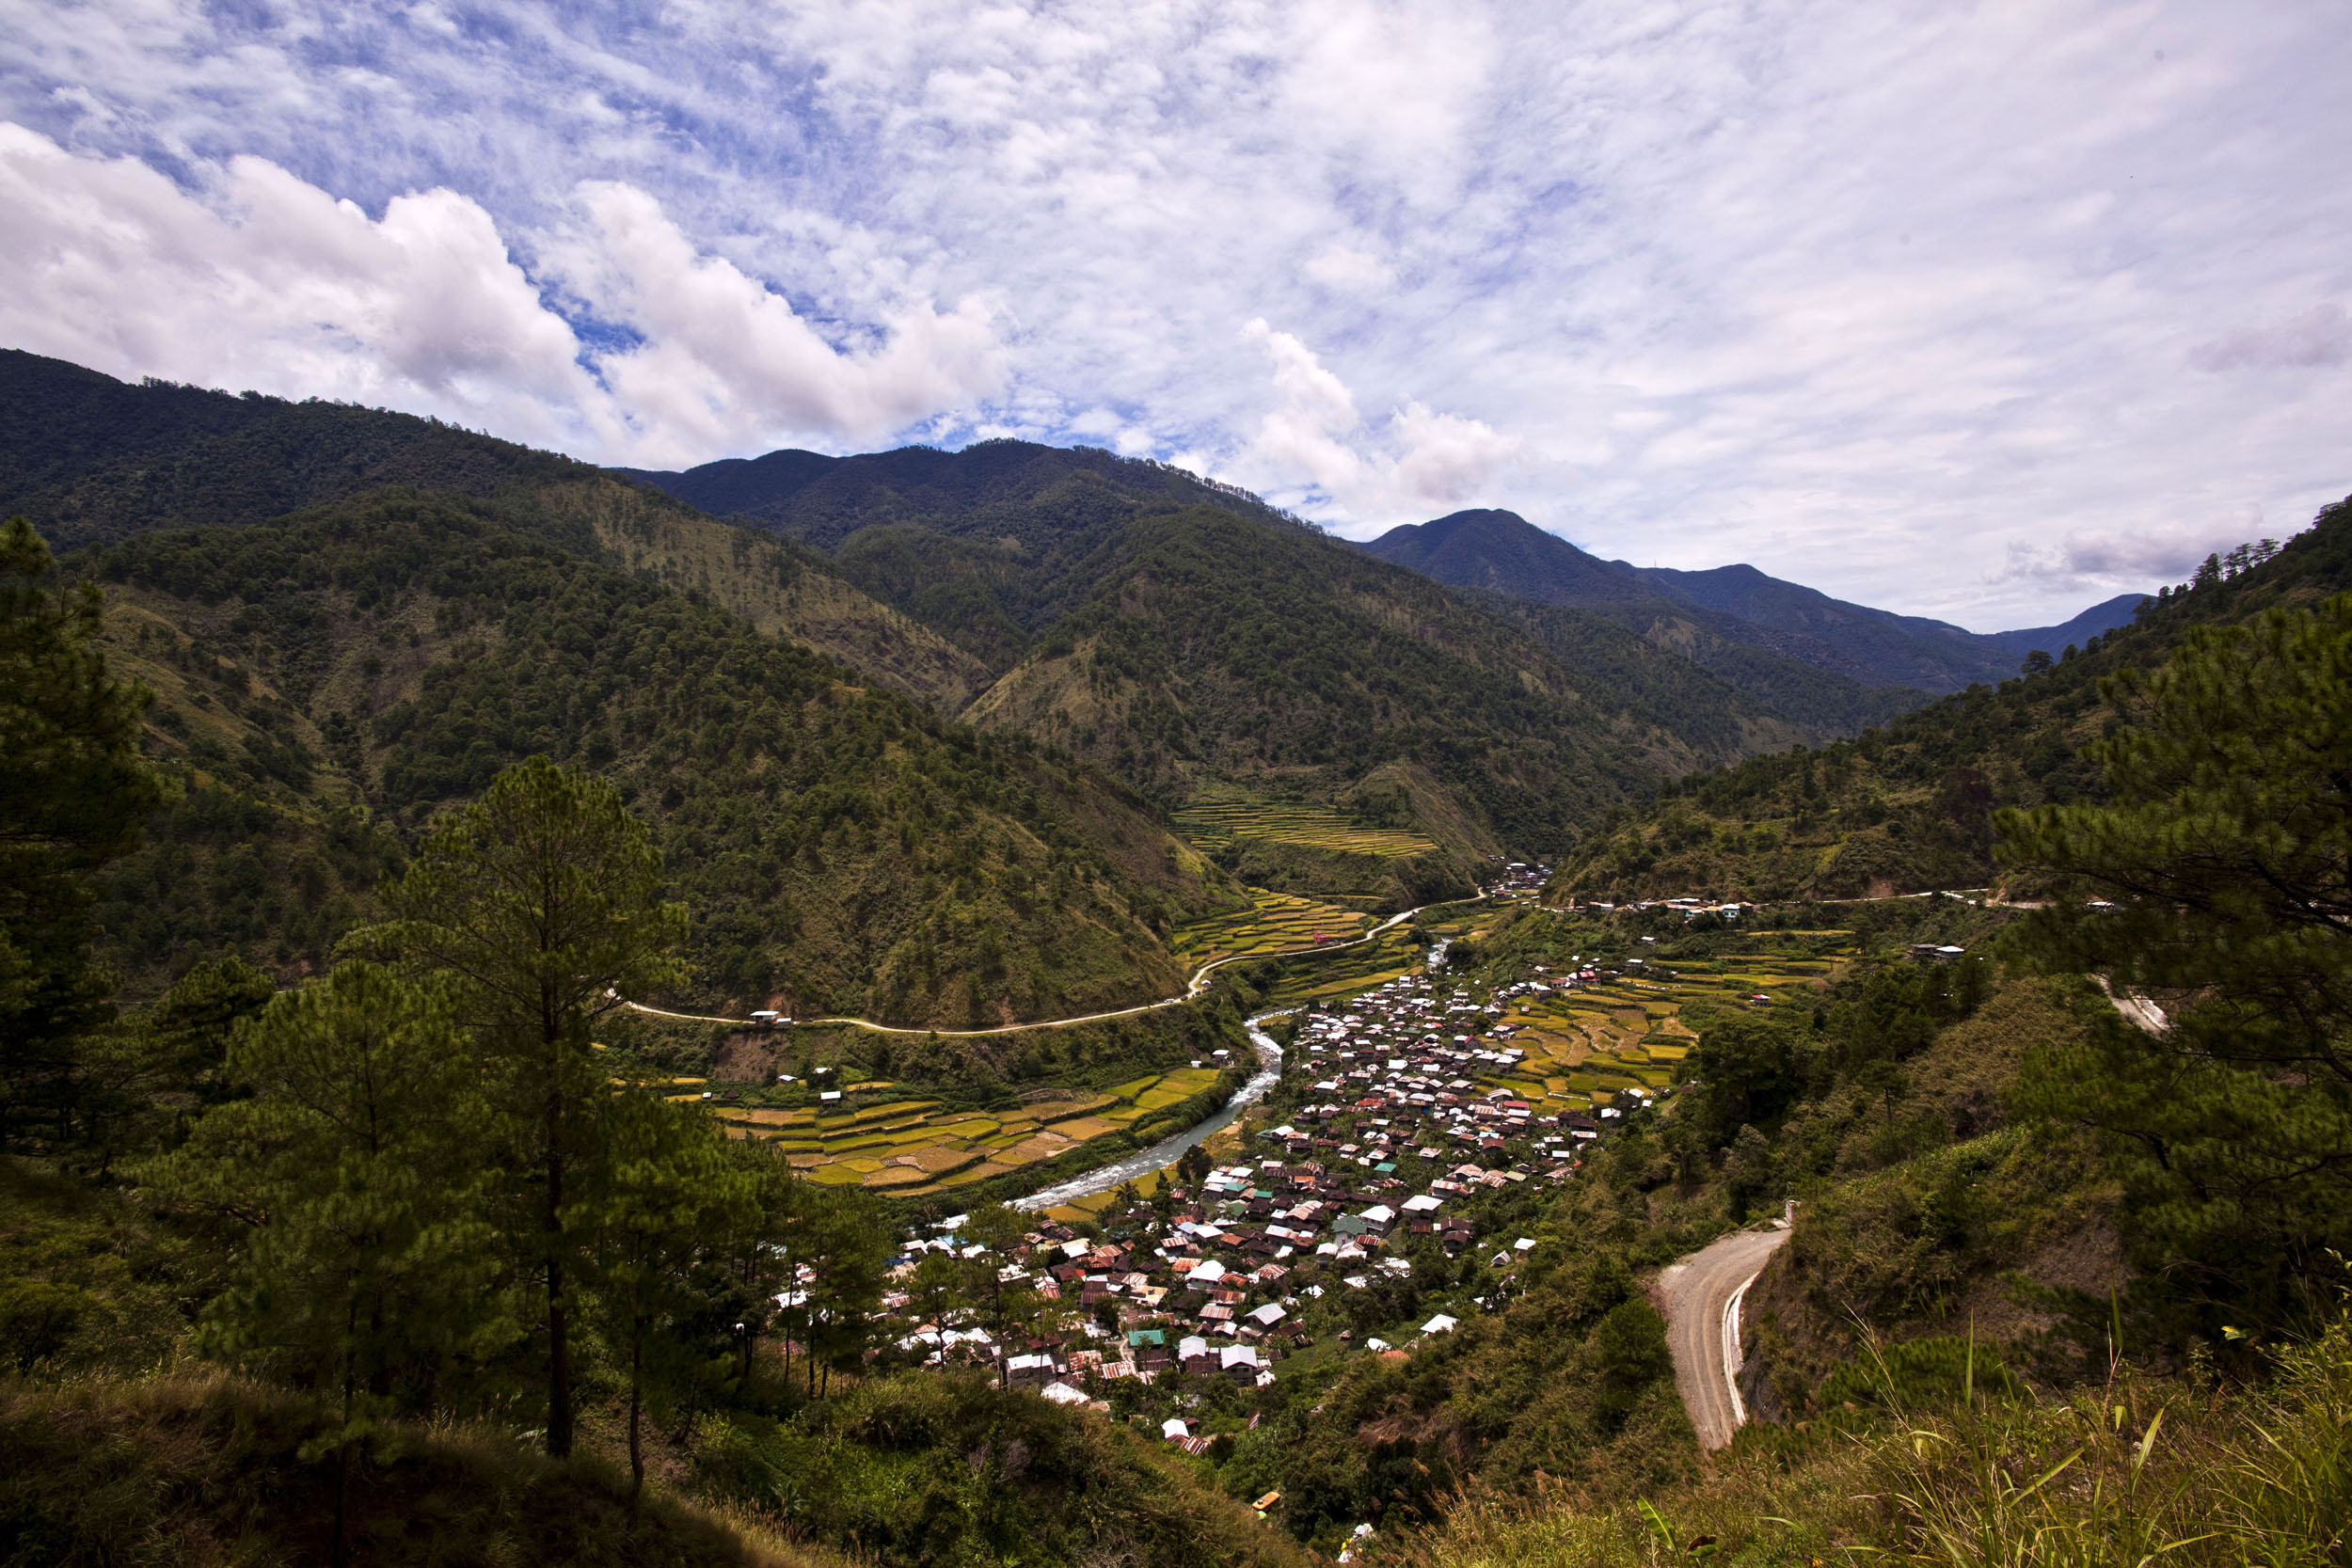 Panoramic views along the Kabayan Rd Halsema Highway from Baguio to Sagada Aug 2011 48